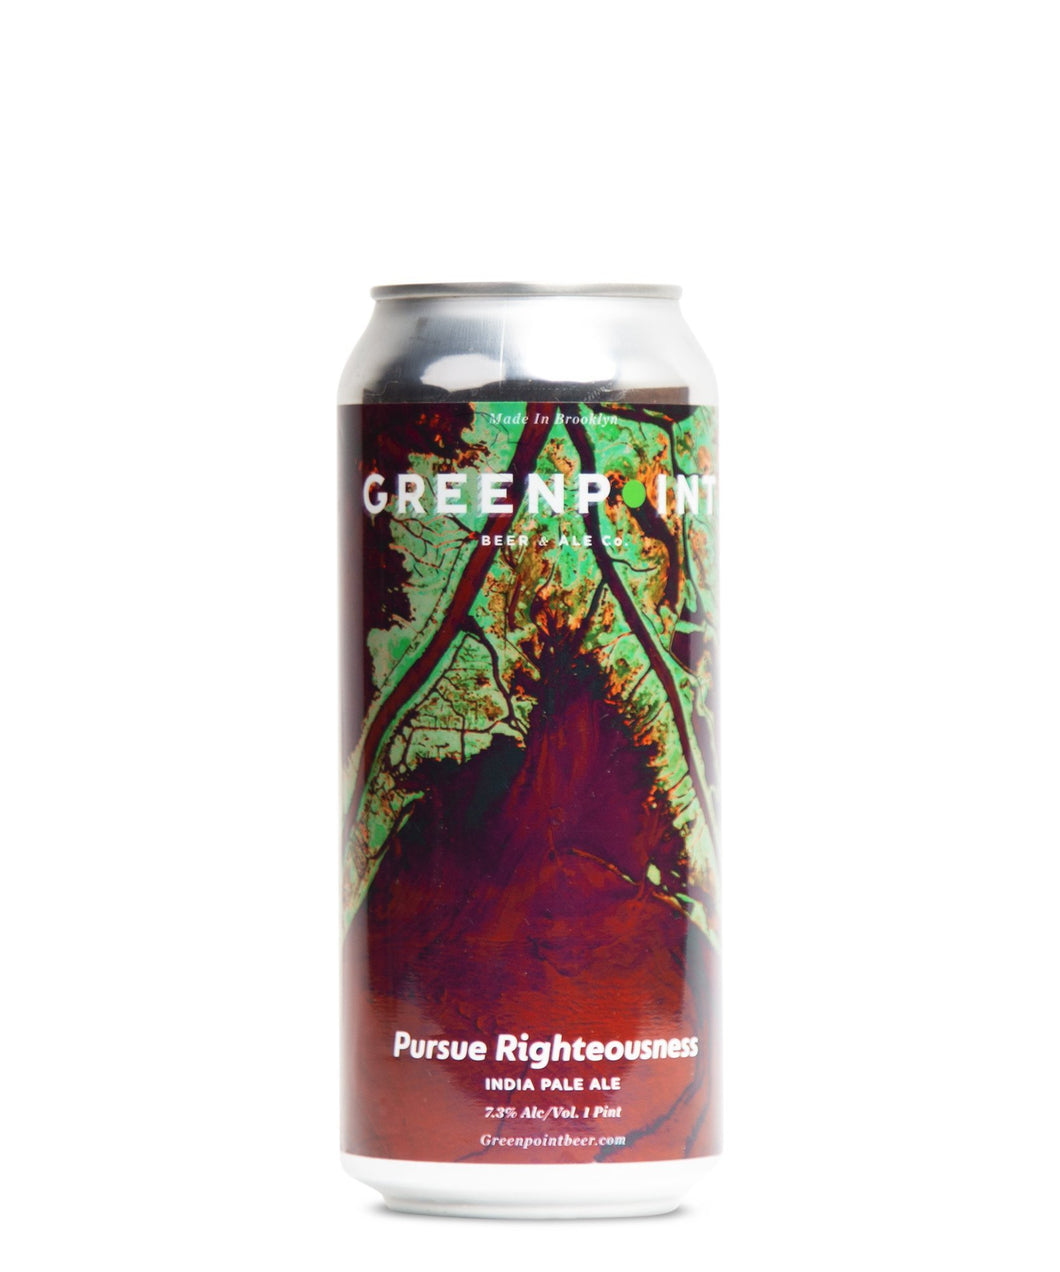 Pursue Righteousness - Greenpoint Beer Ale Co Delivered By TapRm